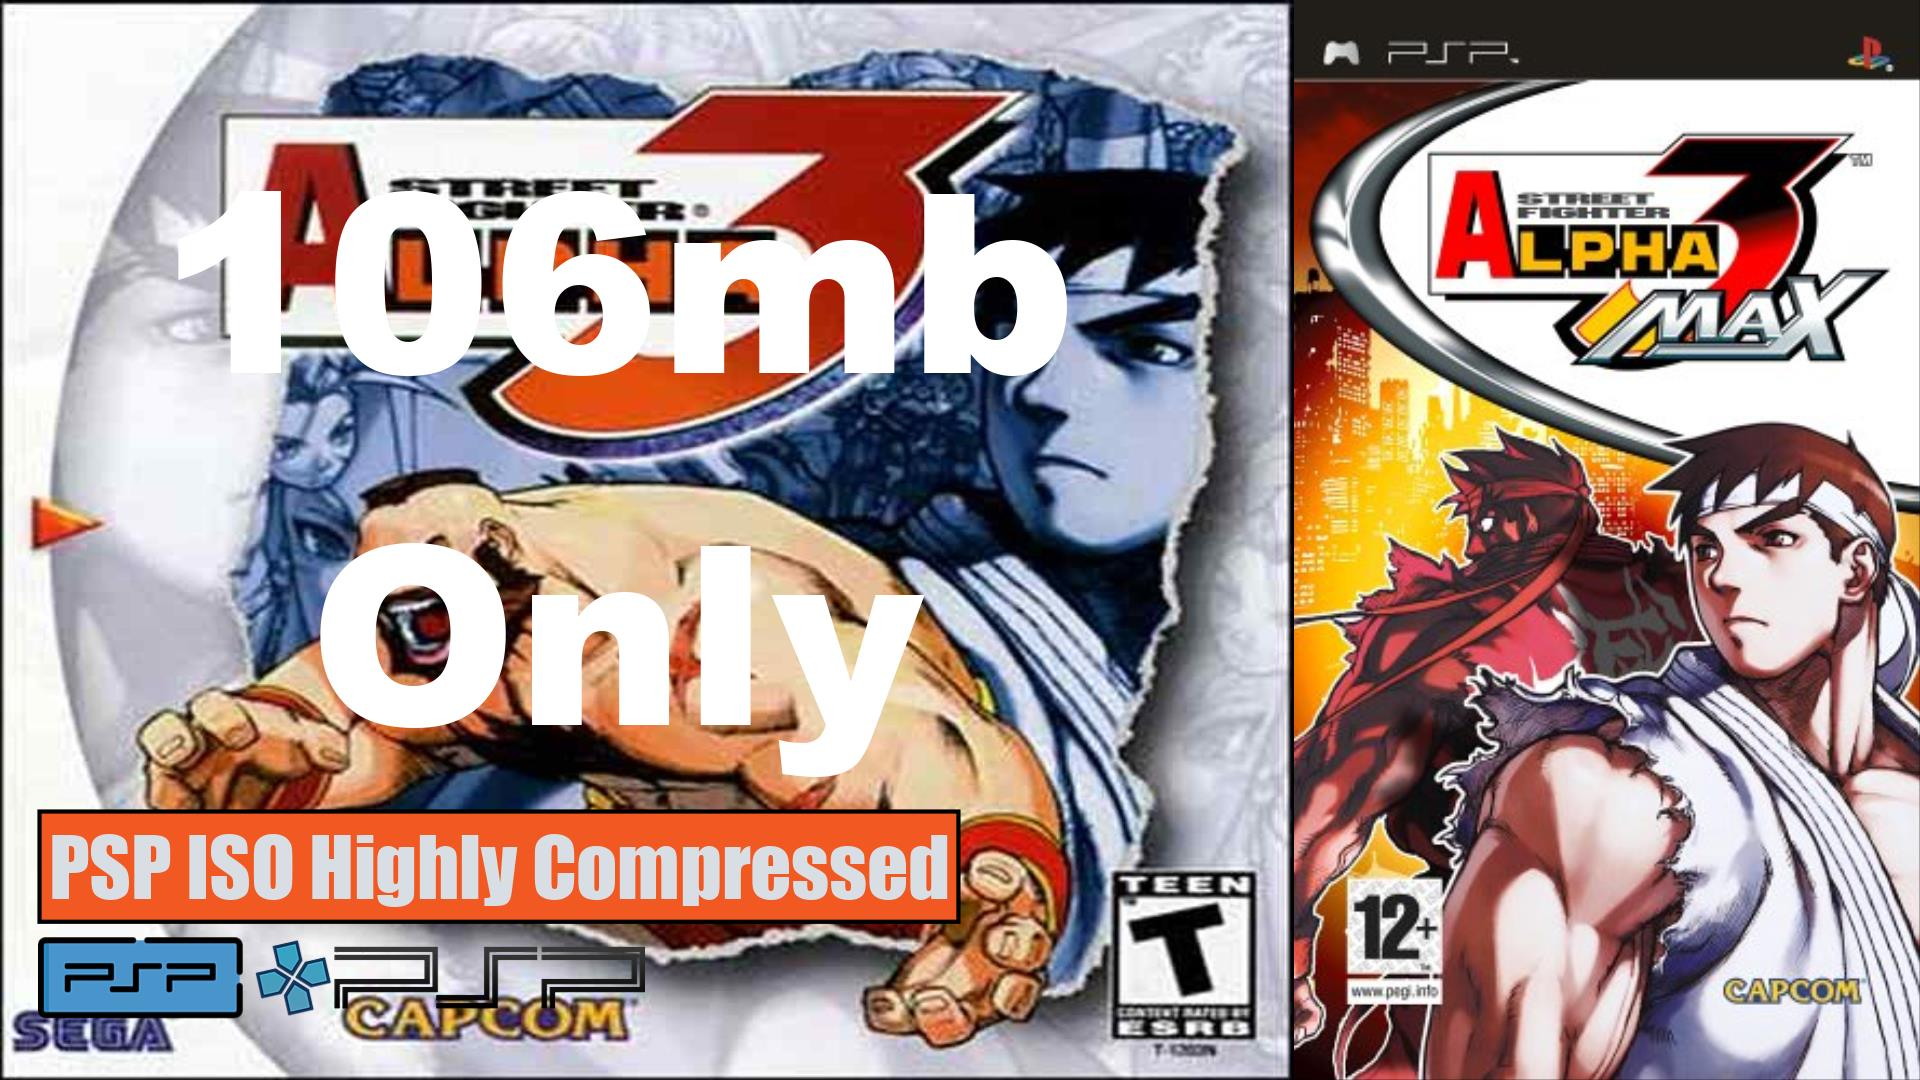 Street Fighter Alpha 3 PSP ISO Highly Compressed